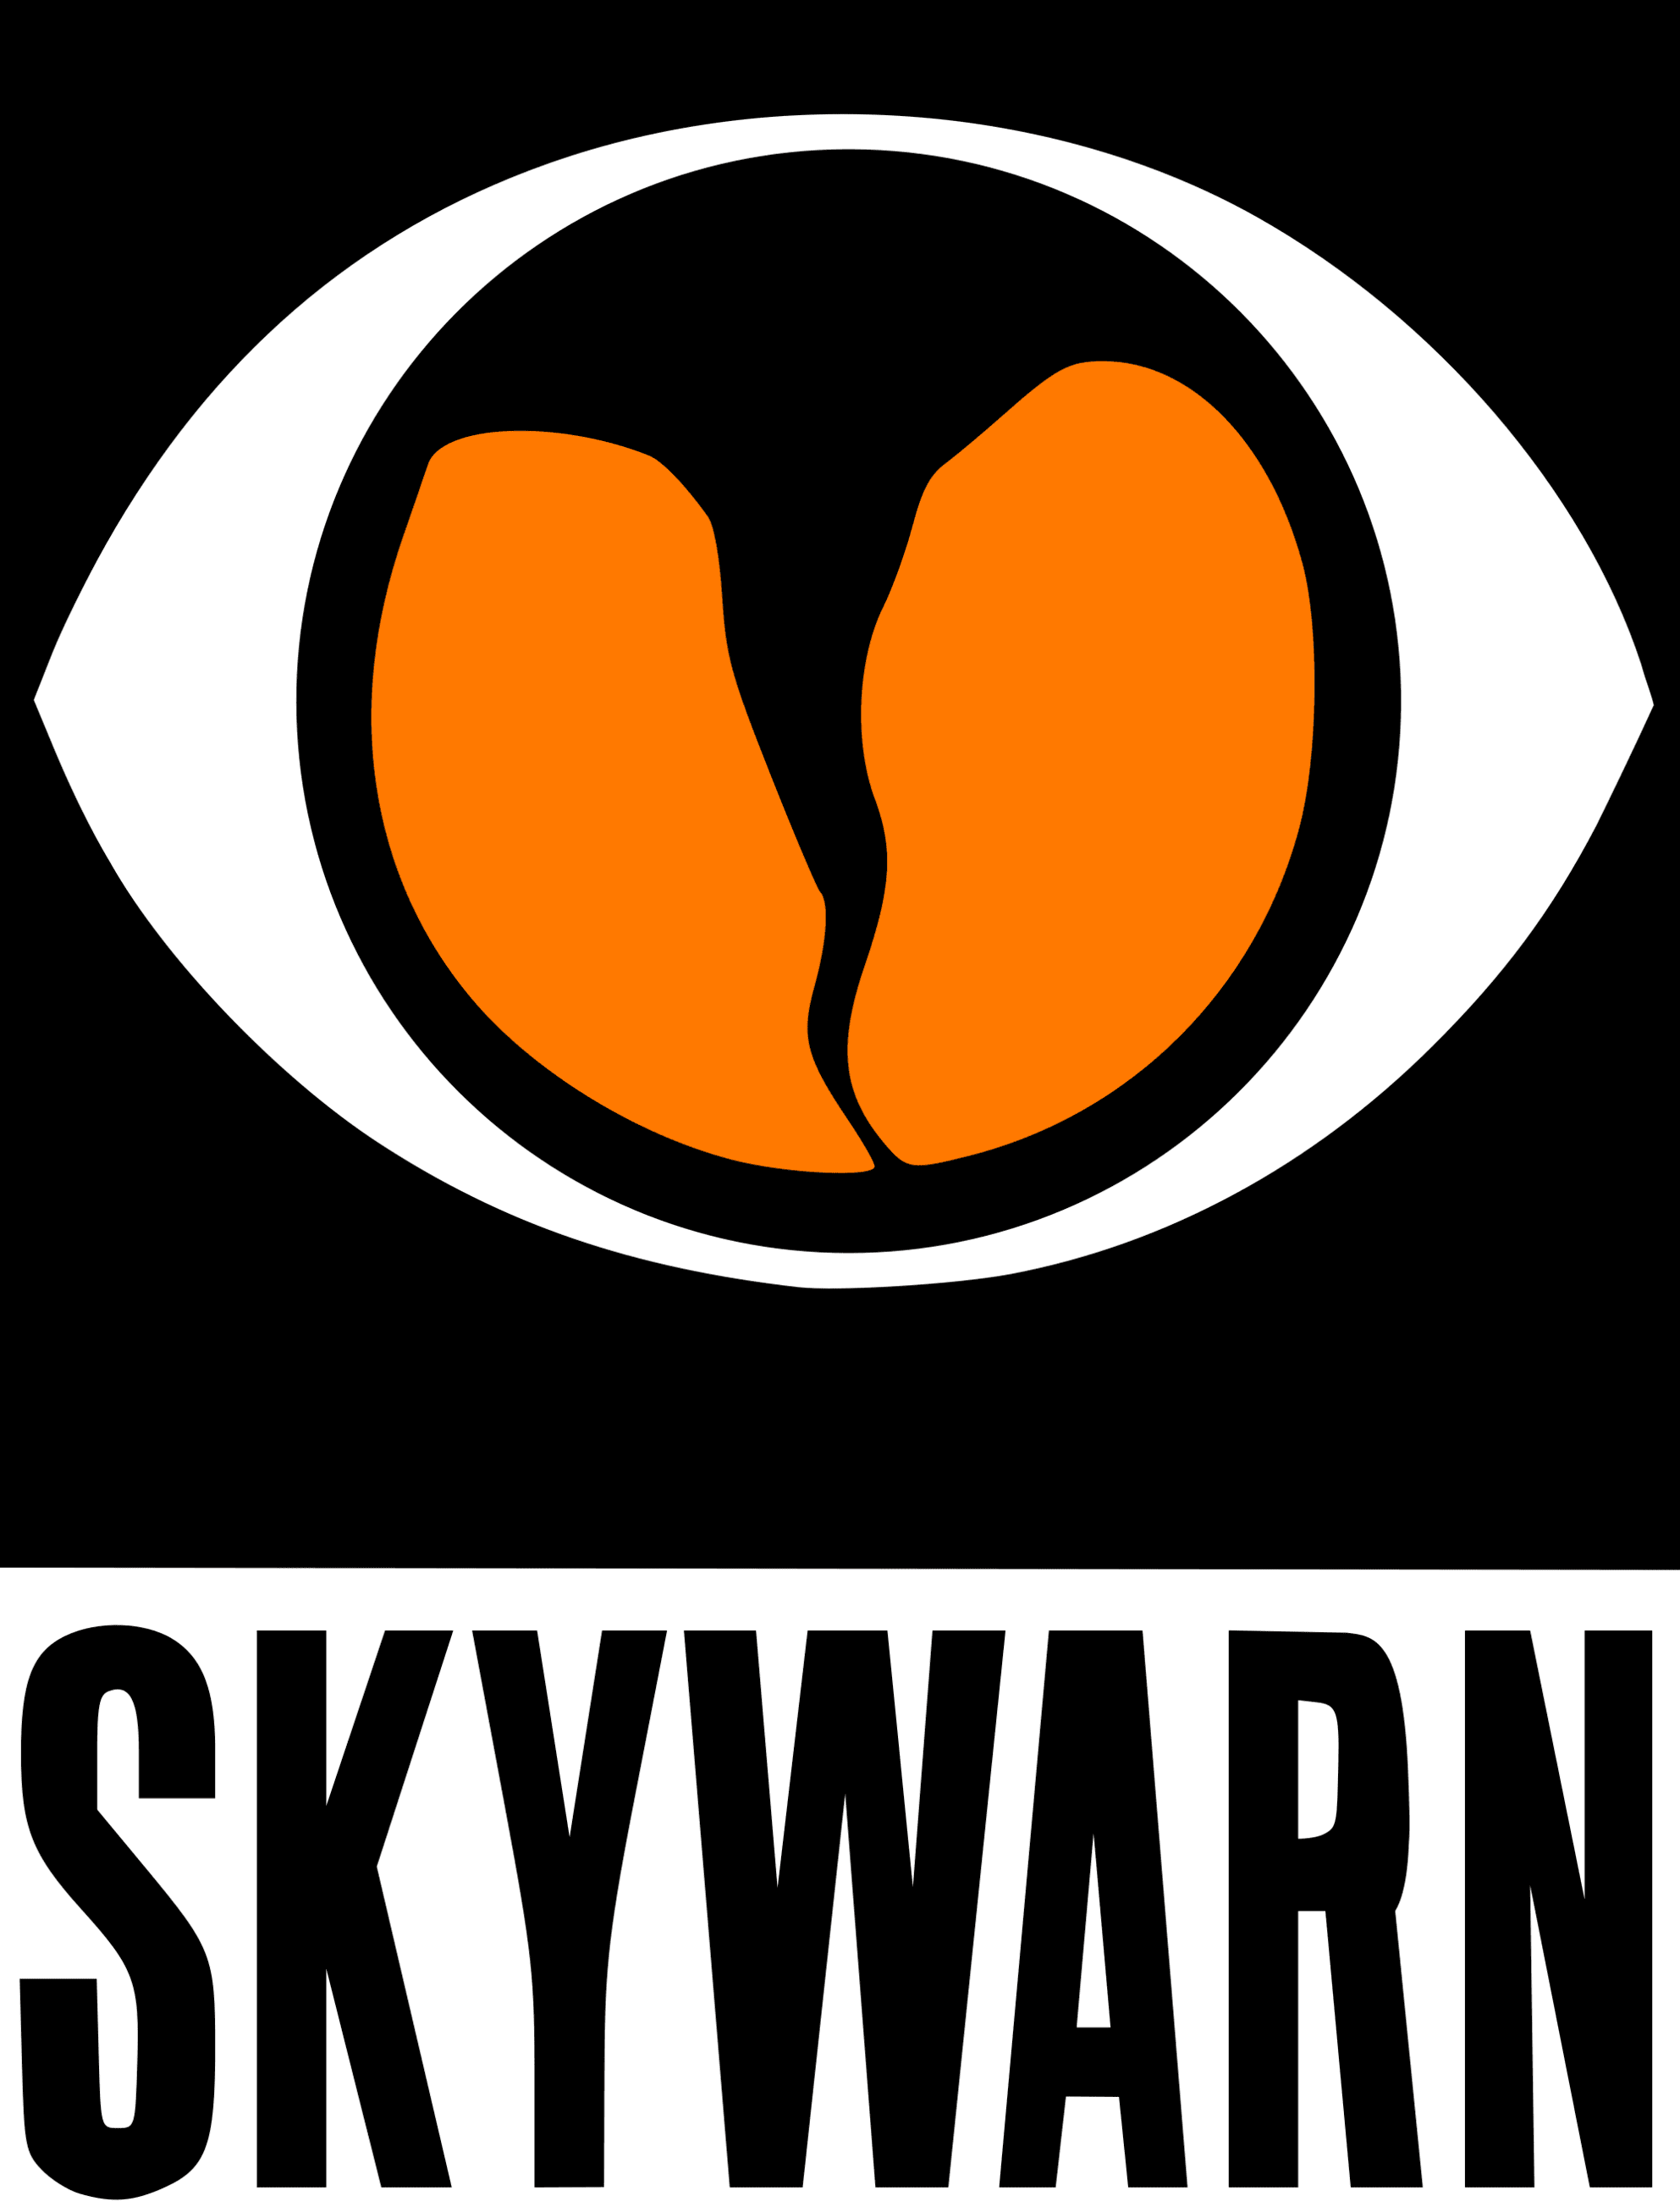 Image of the Skywarn logo